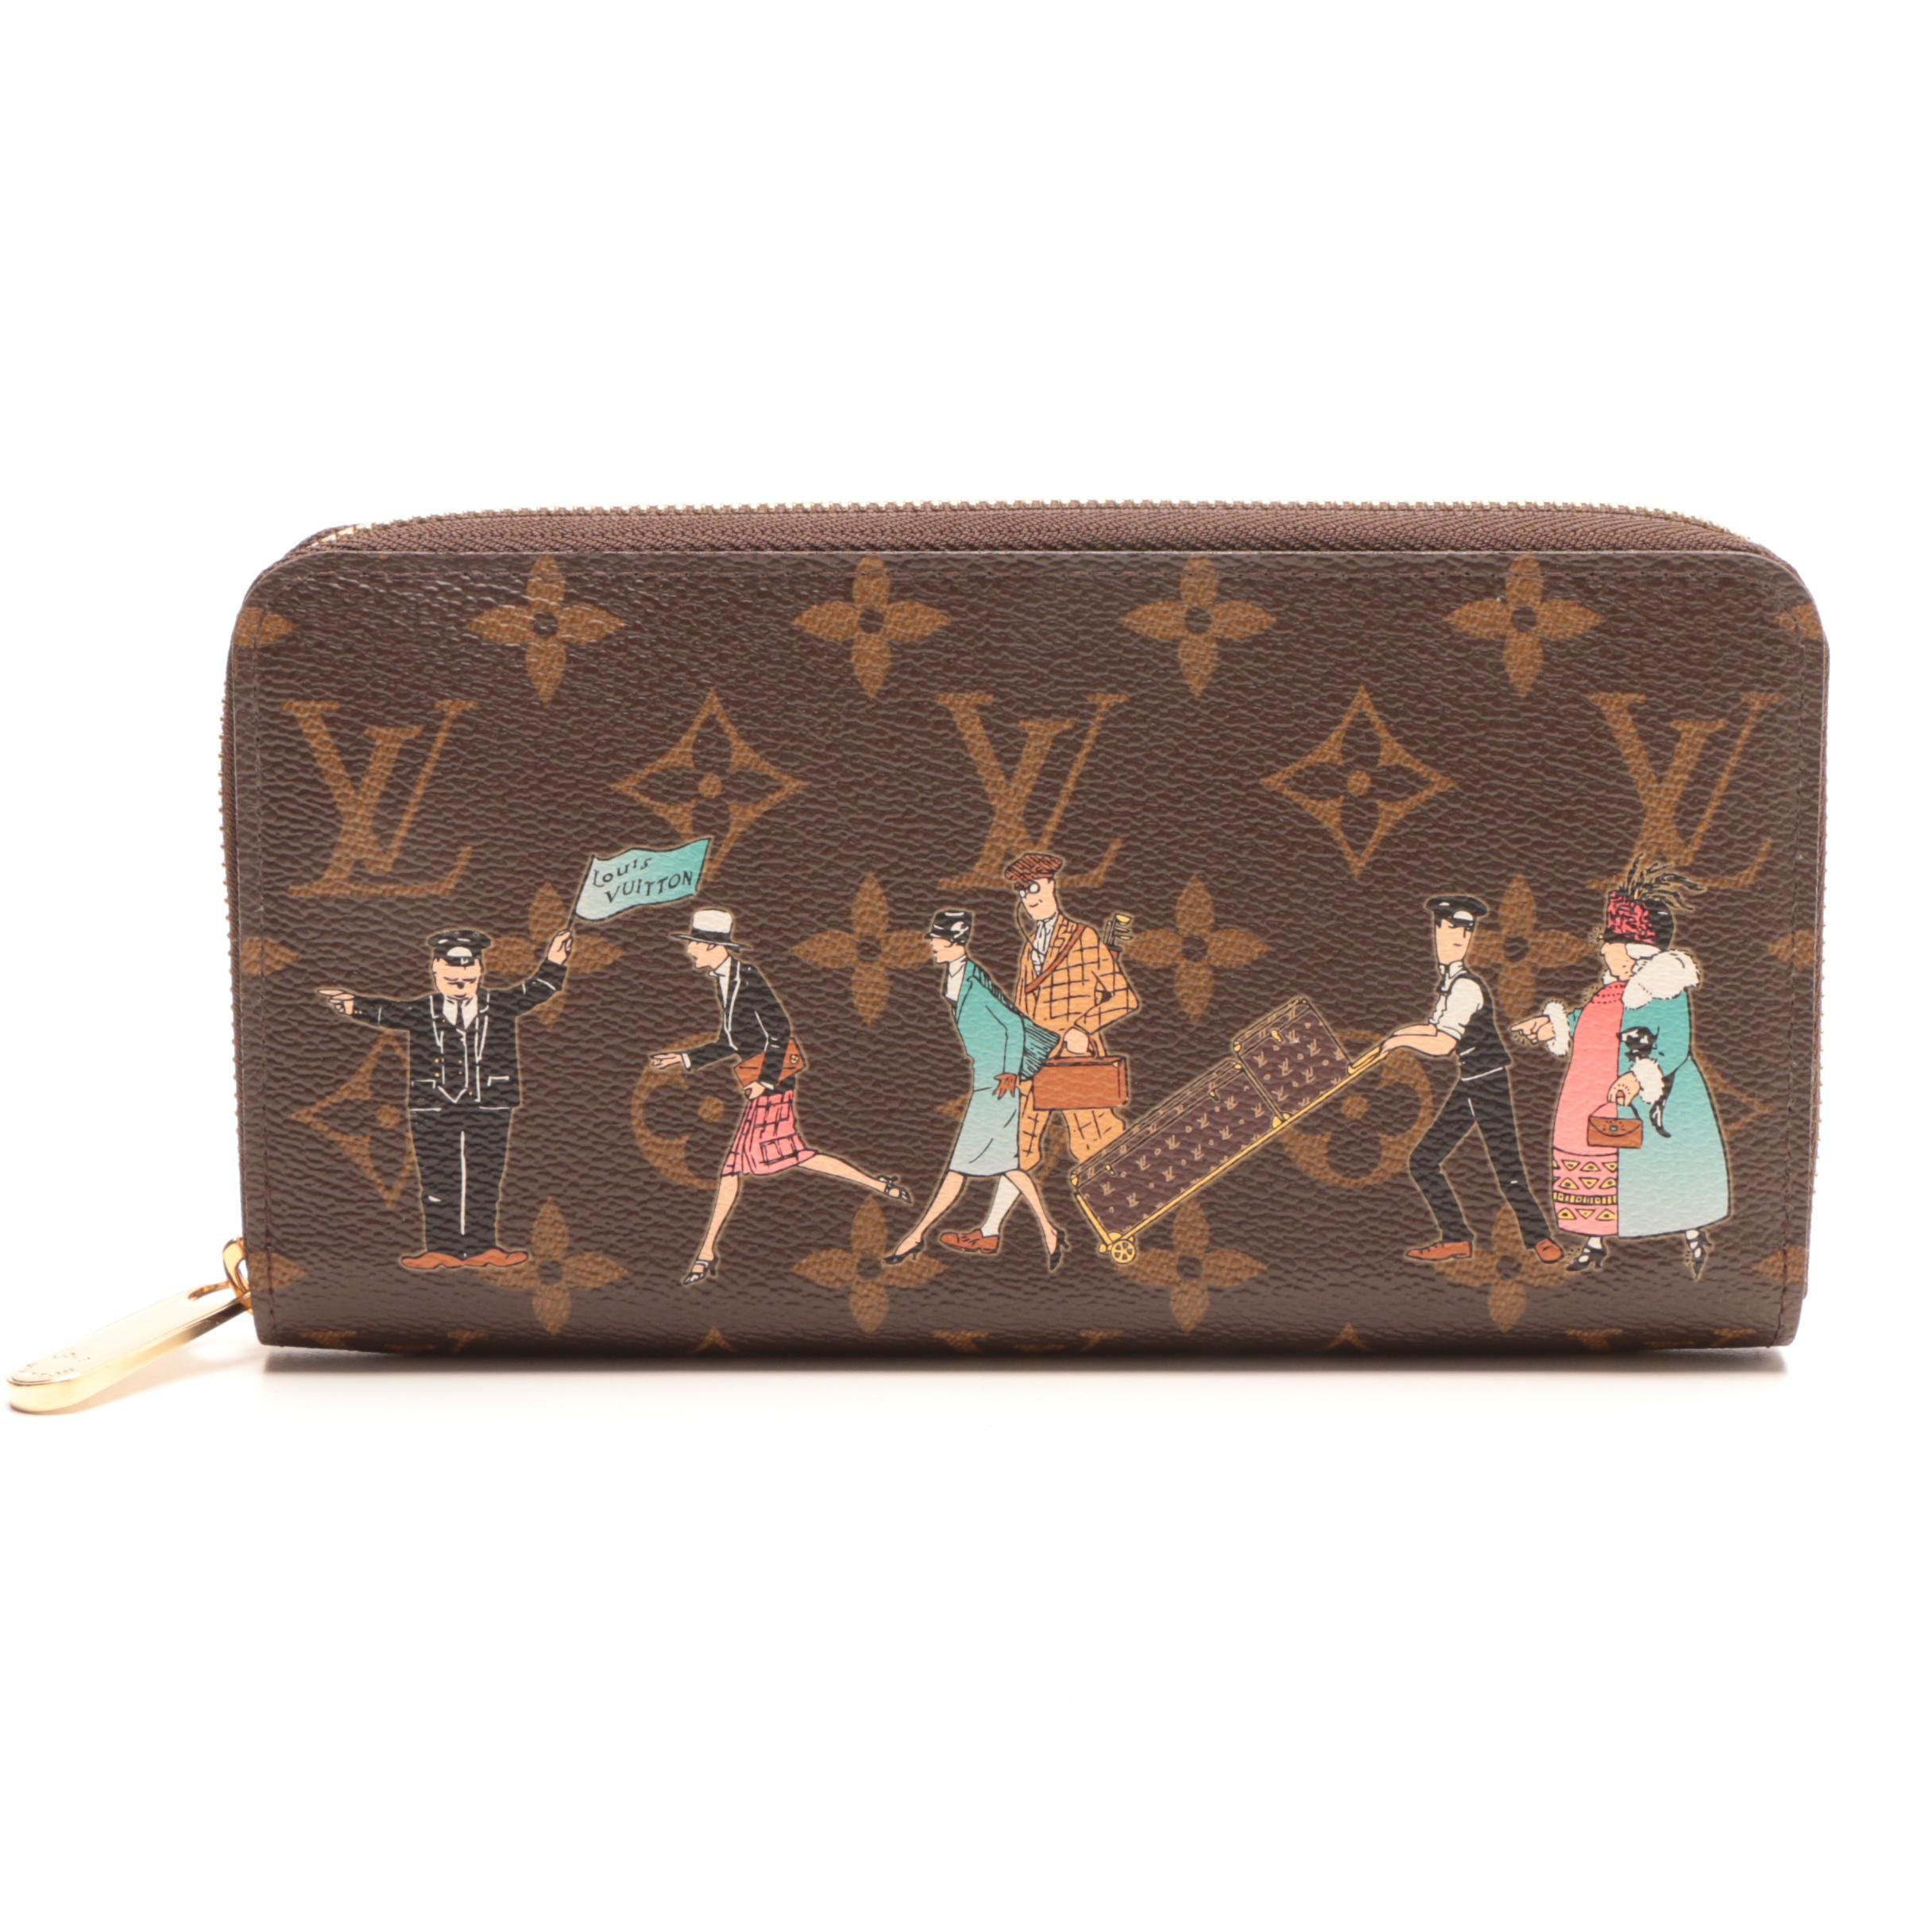 2011 Louis Vuitton Limited Edition Monogram Canvas Illustre Zippy Wallet